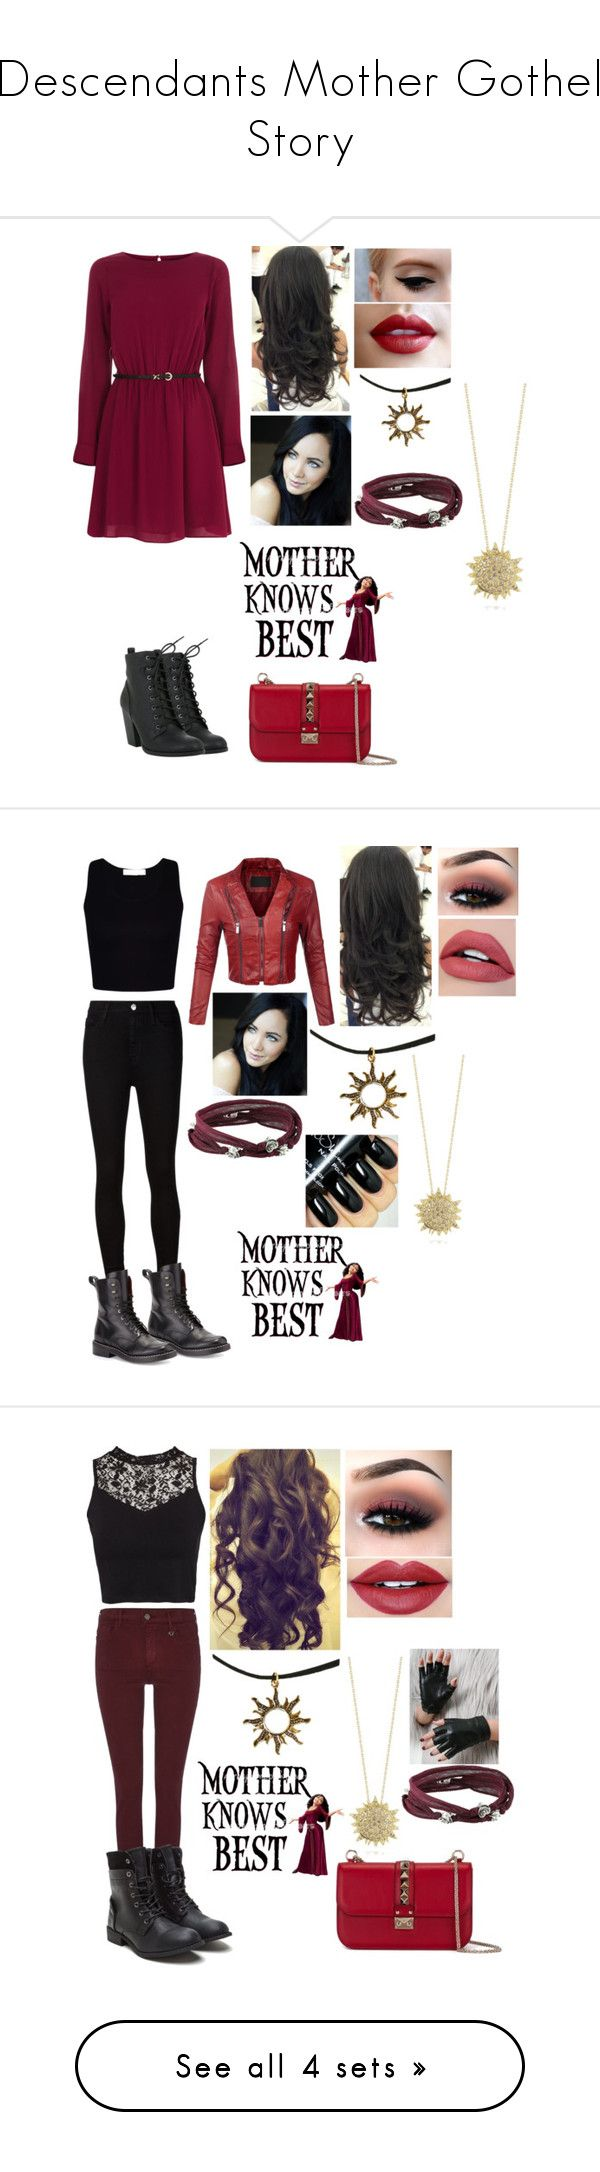 """""""Descendants Mother Gothel Story"""" by animegirl694 ❤ liked on Polyvore featuring Oasis, Hot Topic, King Baby Studio, Roberto Coin, Disney, Valentino, AG Adriano Goldschmied, rag & bone, True Religion and NLY Trend"""